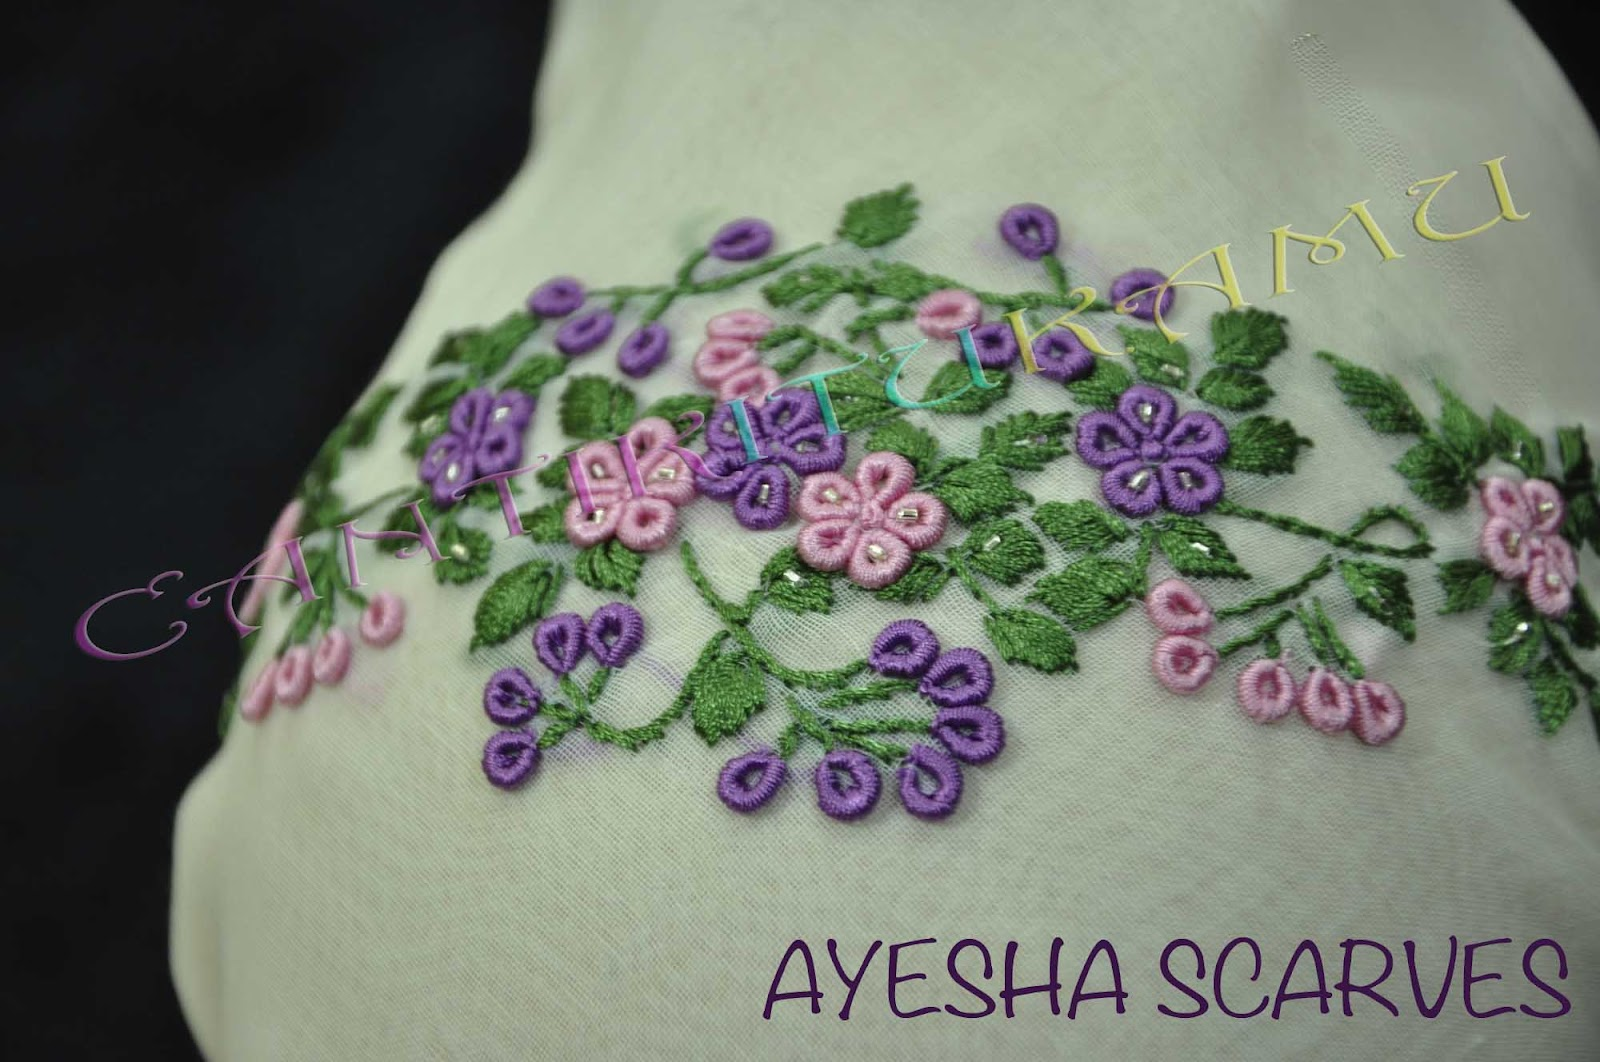 AYESHA SCARVES-SOLD OUT-TQ!